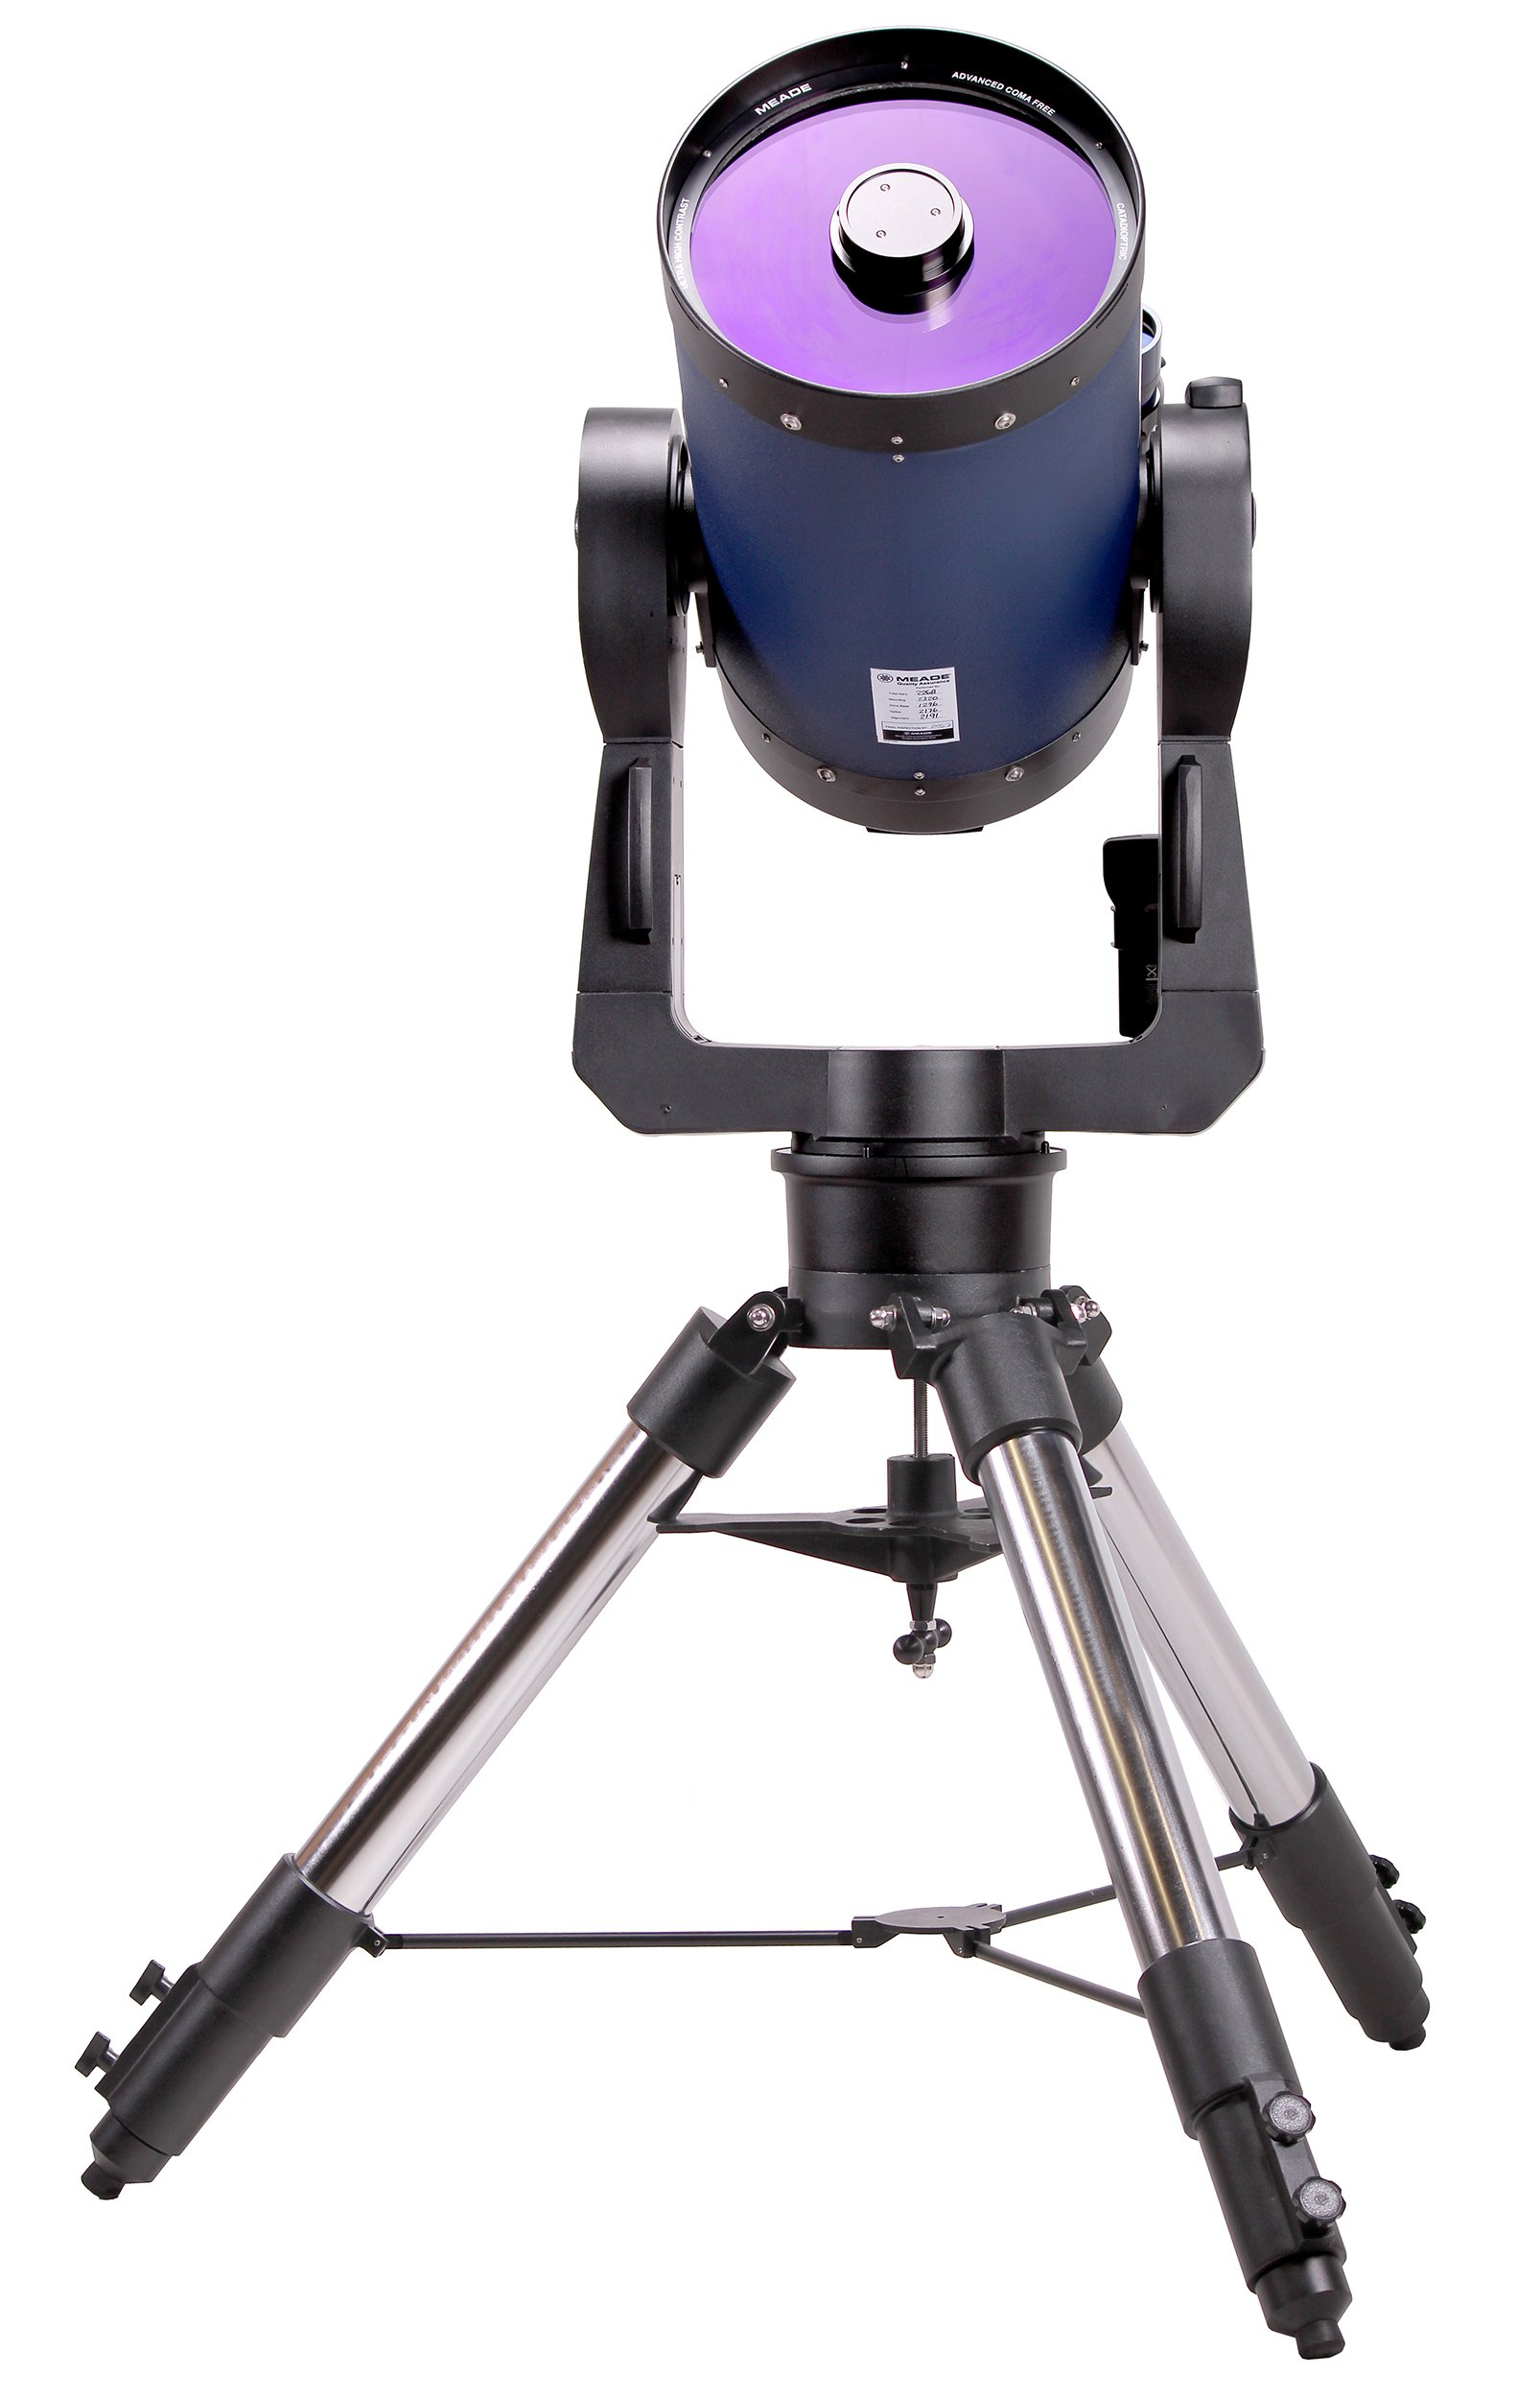 Meade Instruments 1210-60-03 12-Inch LX200-ACF (f/10) Advanced Coma-Free Telescope by Meade Instruments